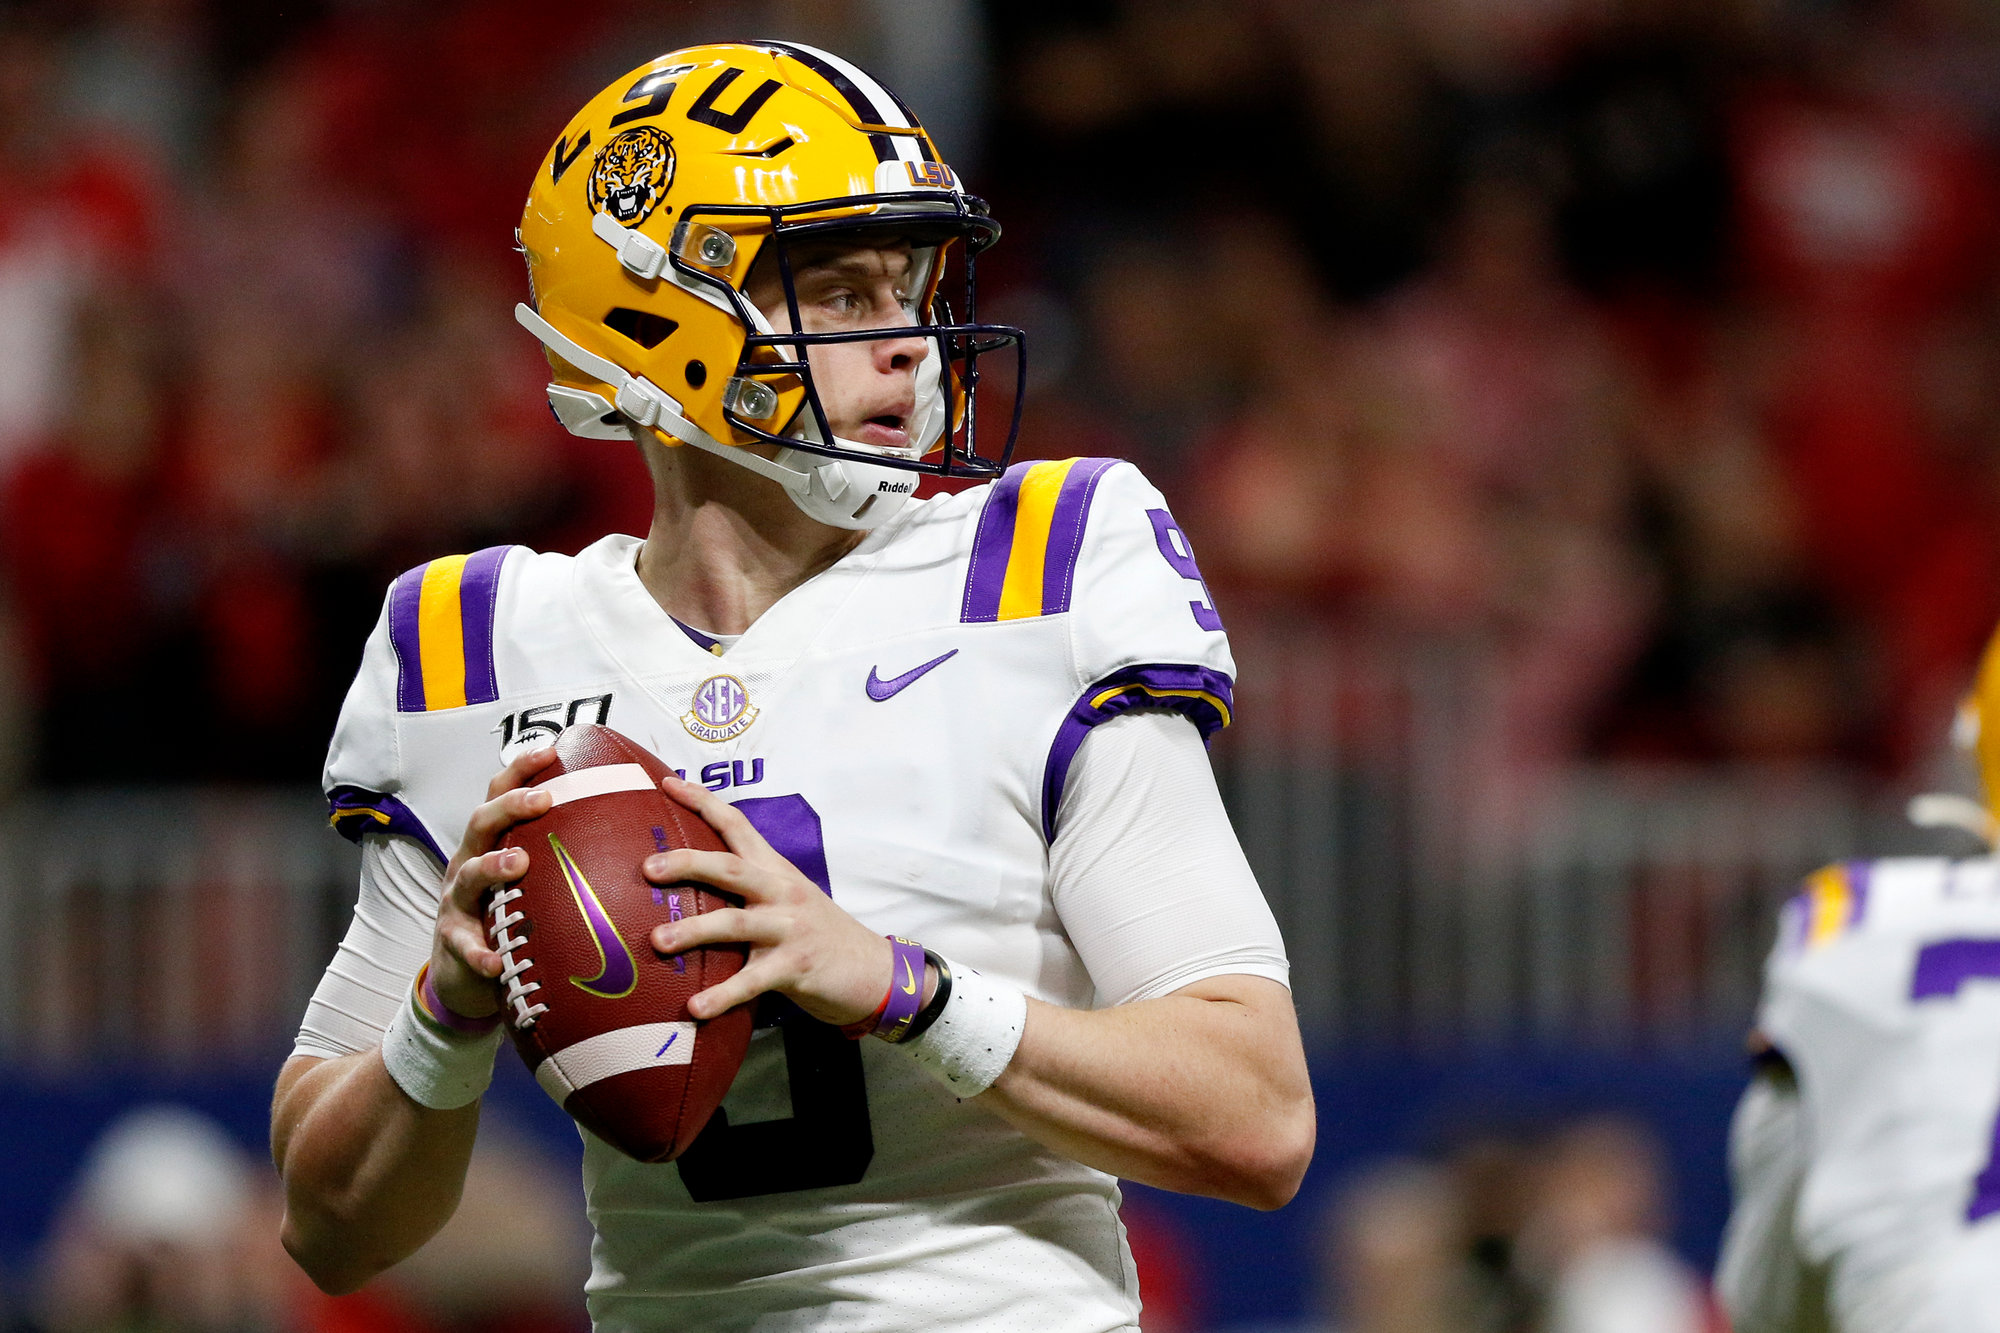 THE ASSOCIATED PRESS  LSU quarterback Joe Burrow (9) will lead the Tigers against fellow quarterback Jalen Hurts and the Oklahoma Sooners in the Peach Bowl College Football Playoff semifinal game in Atlanta on Saturday.